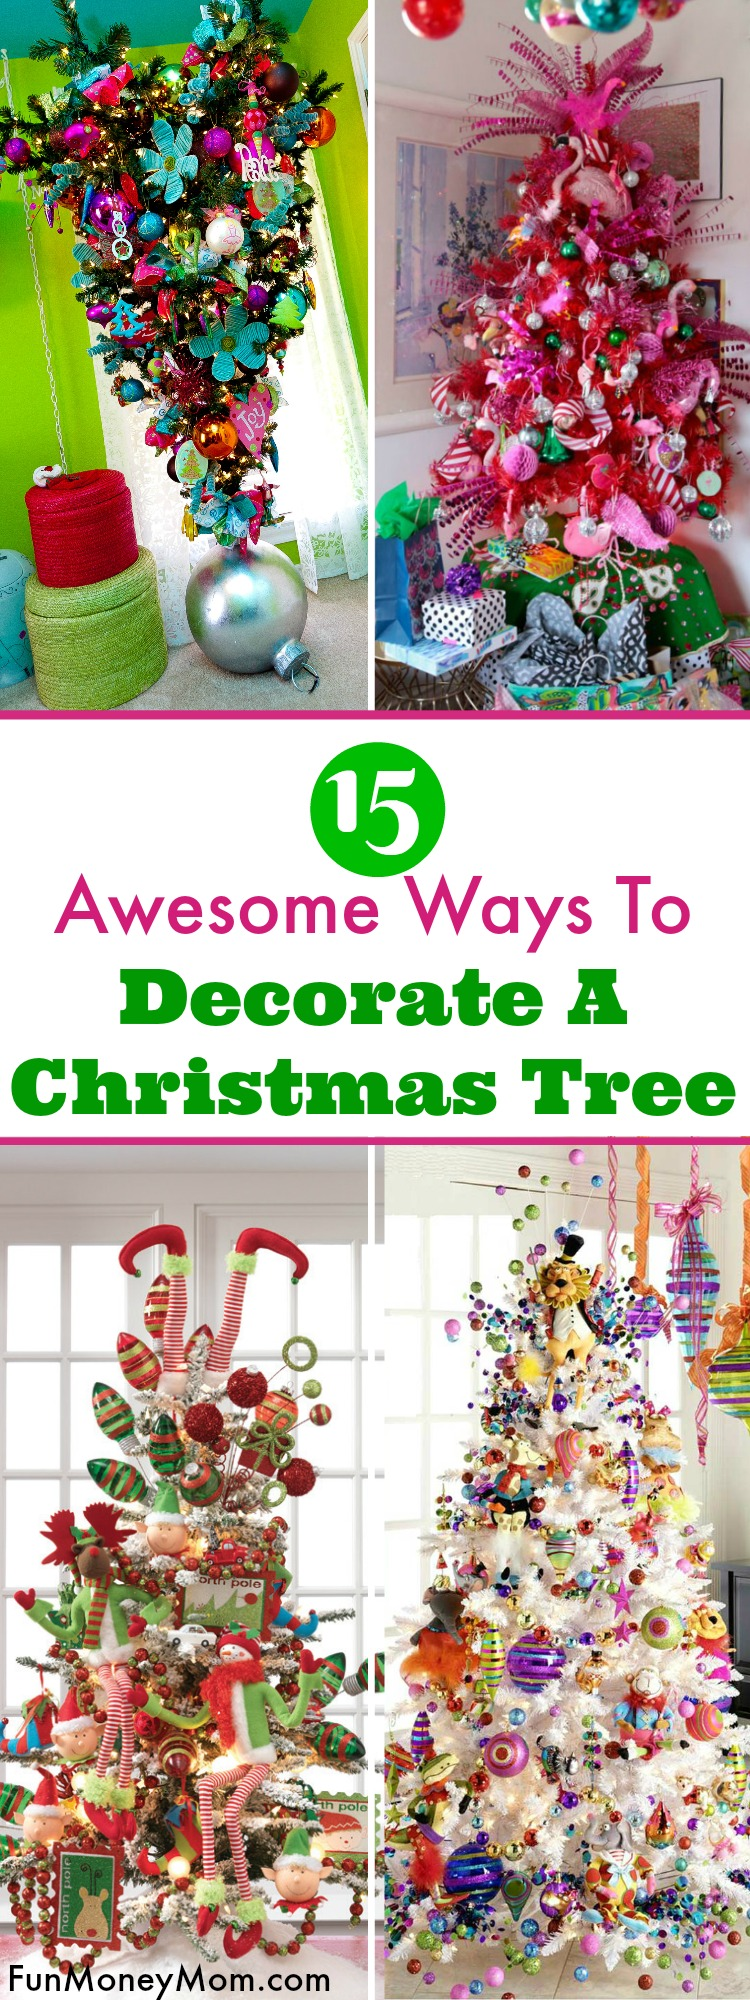 Creative Ways To Decorate For Christmas